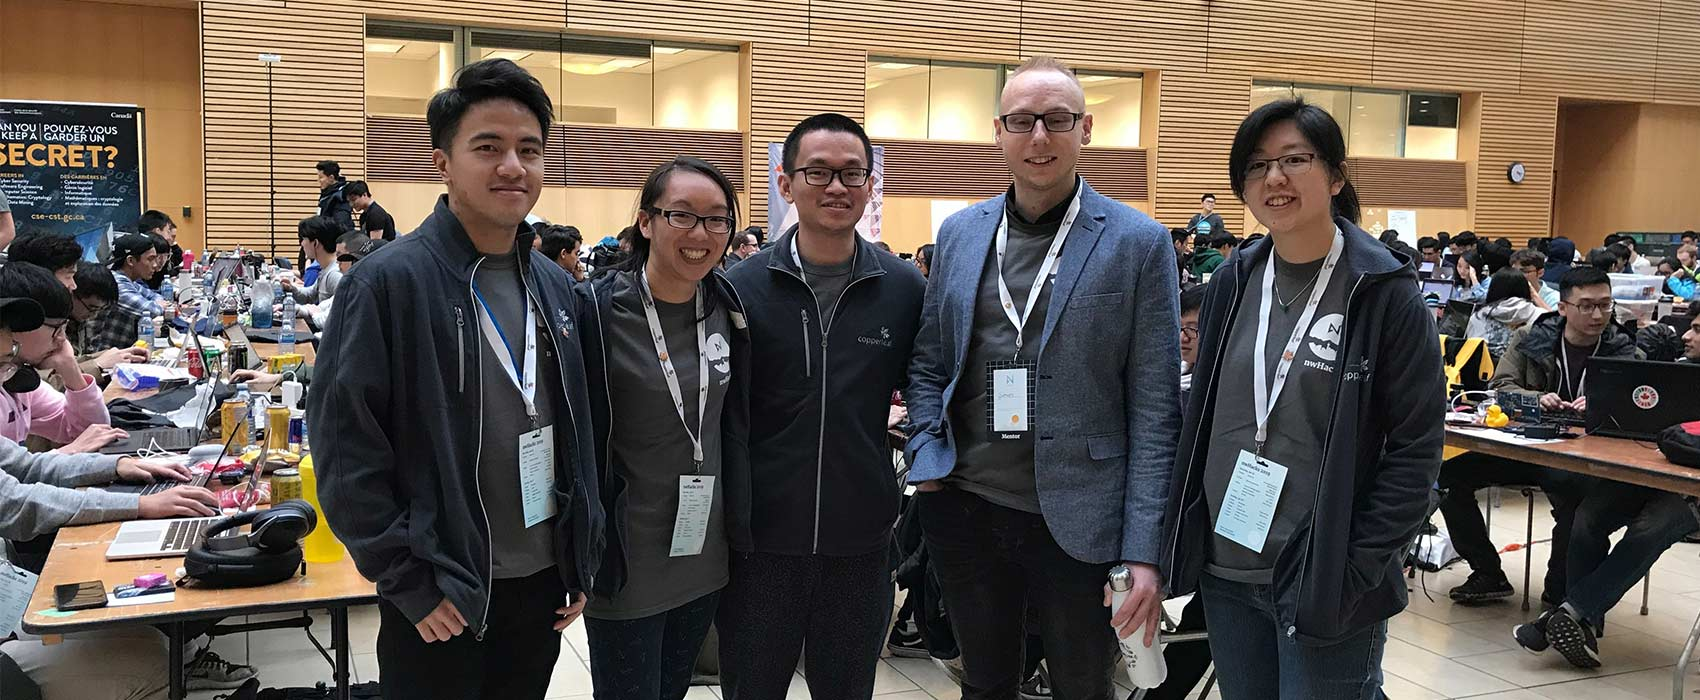 Image for Copperleaf Supports Our Local Tech Community at nwHacks 2019